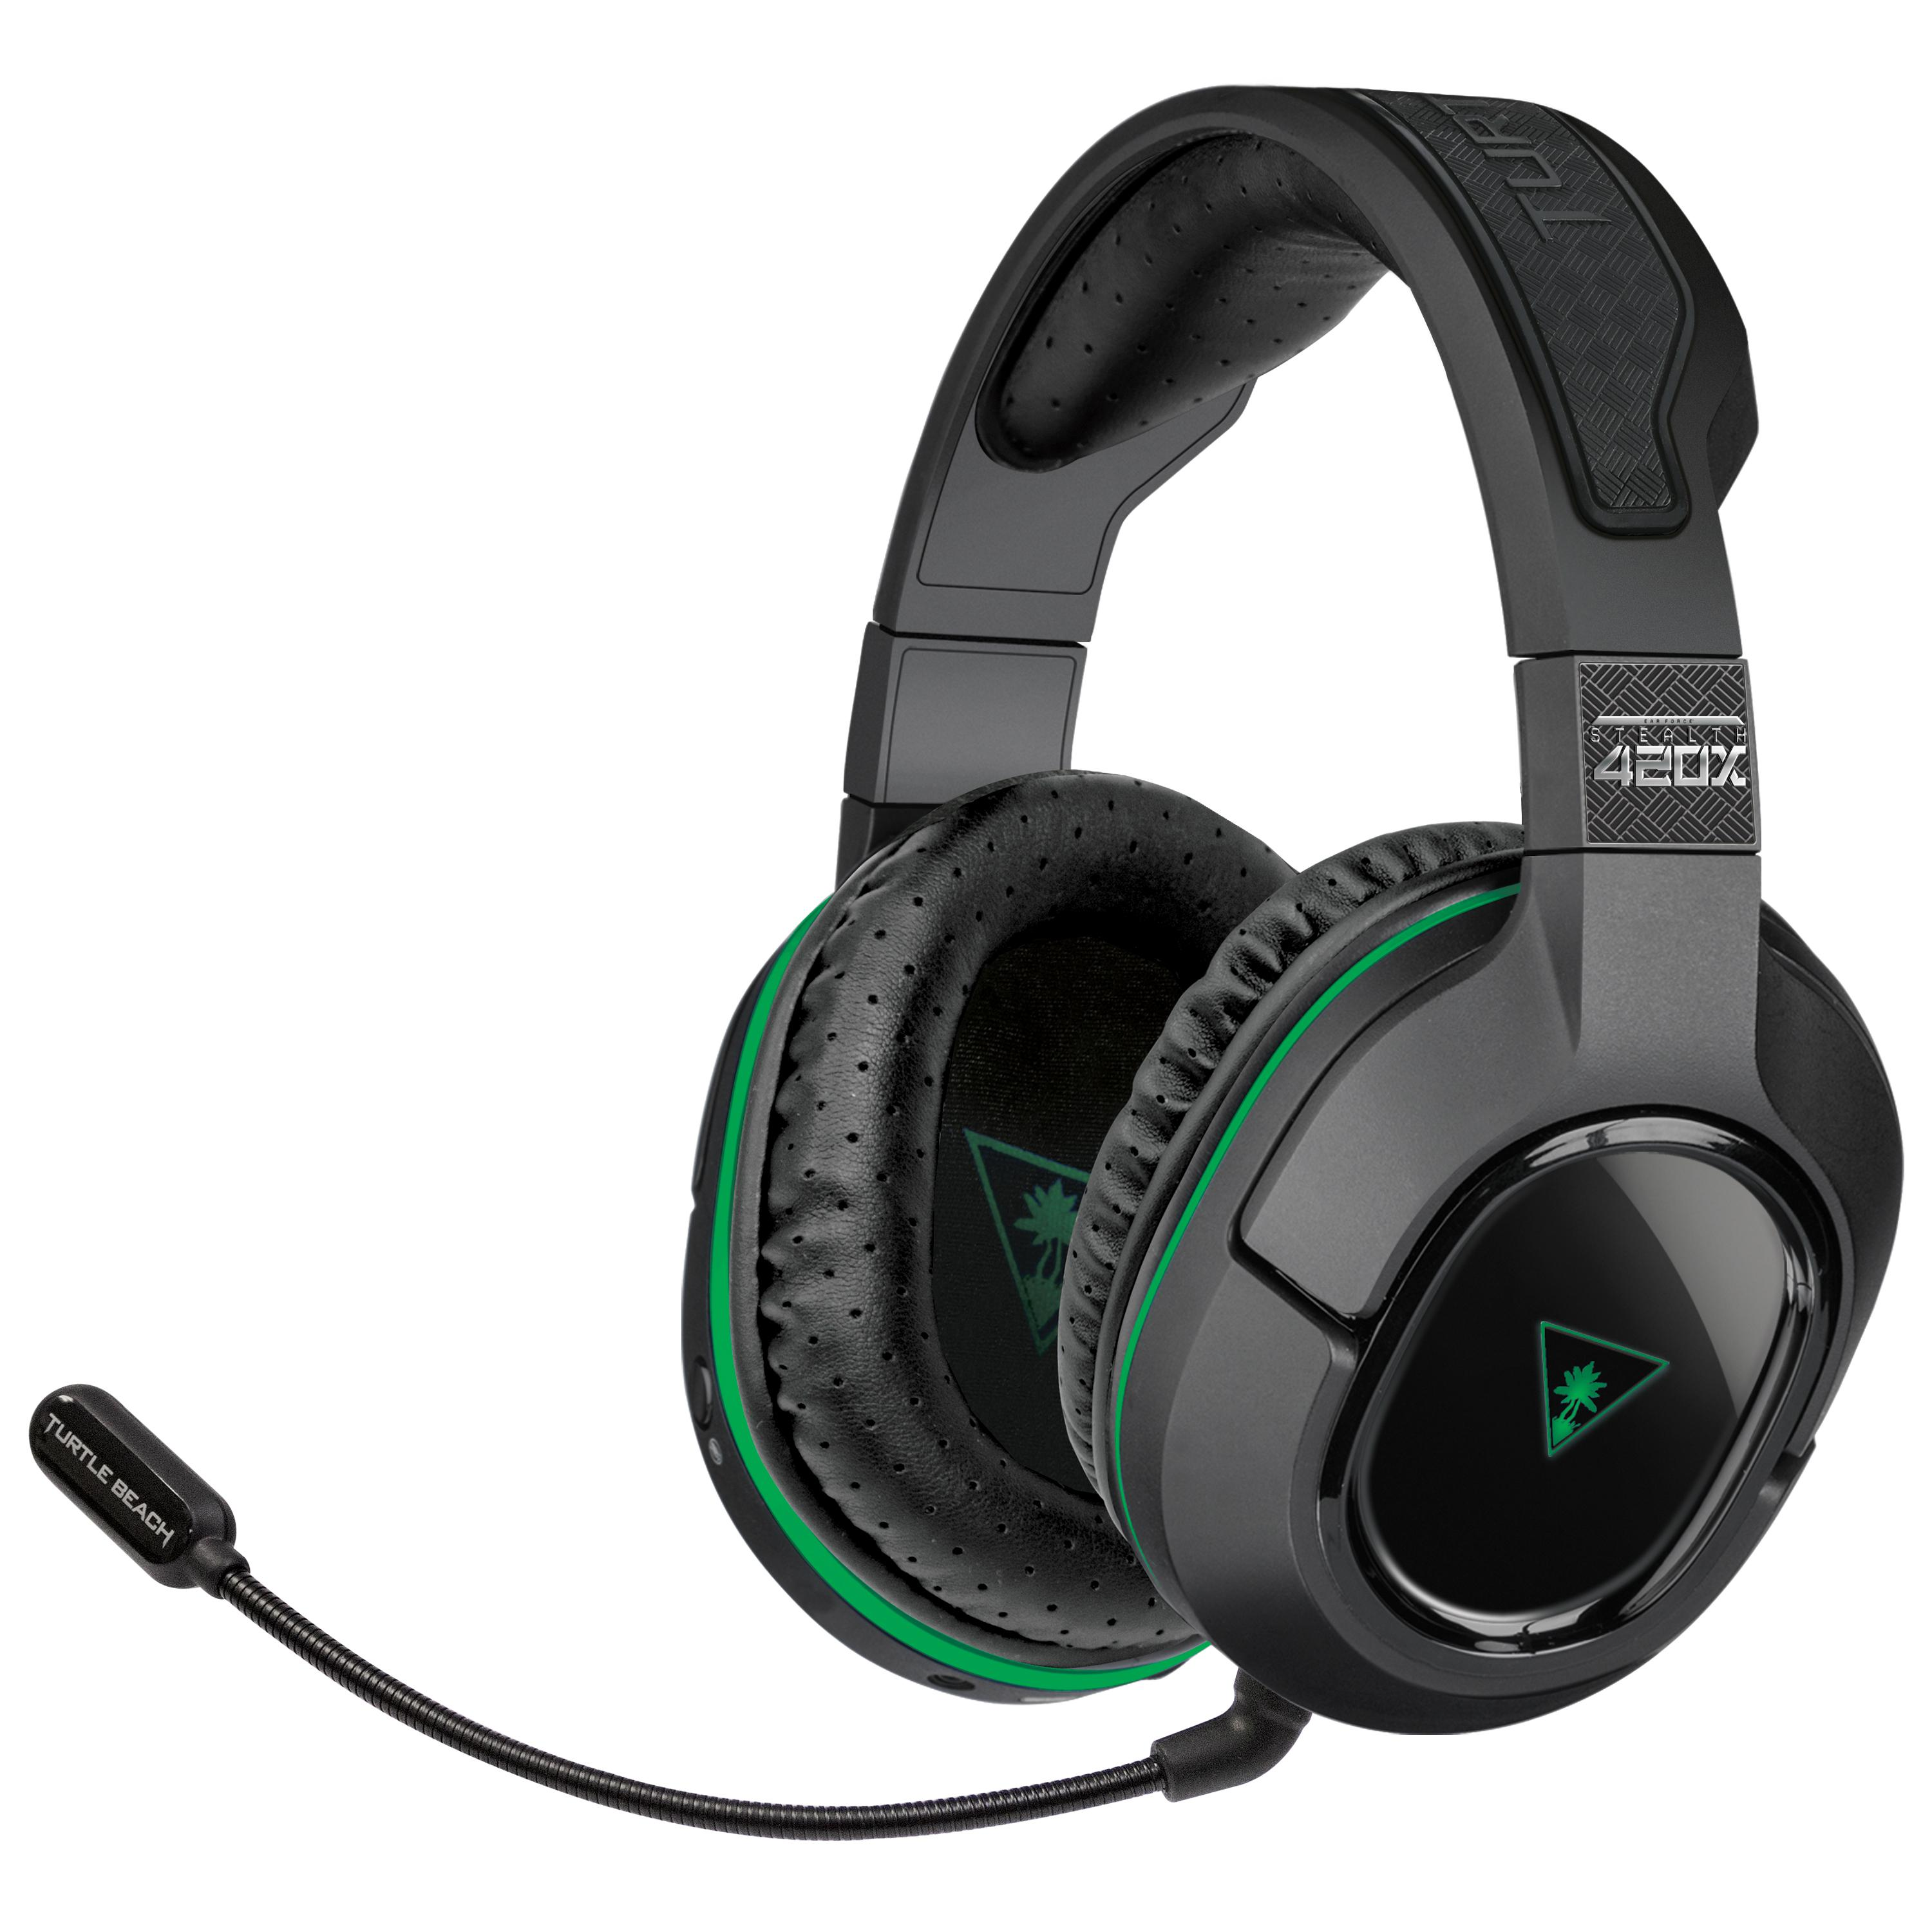 turtle beach stealth 420x and wireless gaming headset. Black Bedroom Furniture Sets. Home Design Ideas